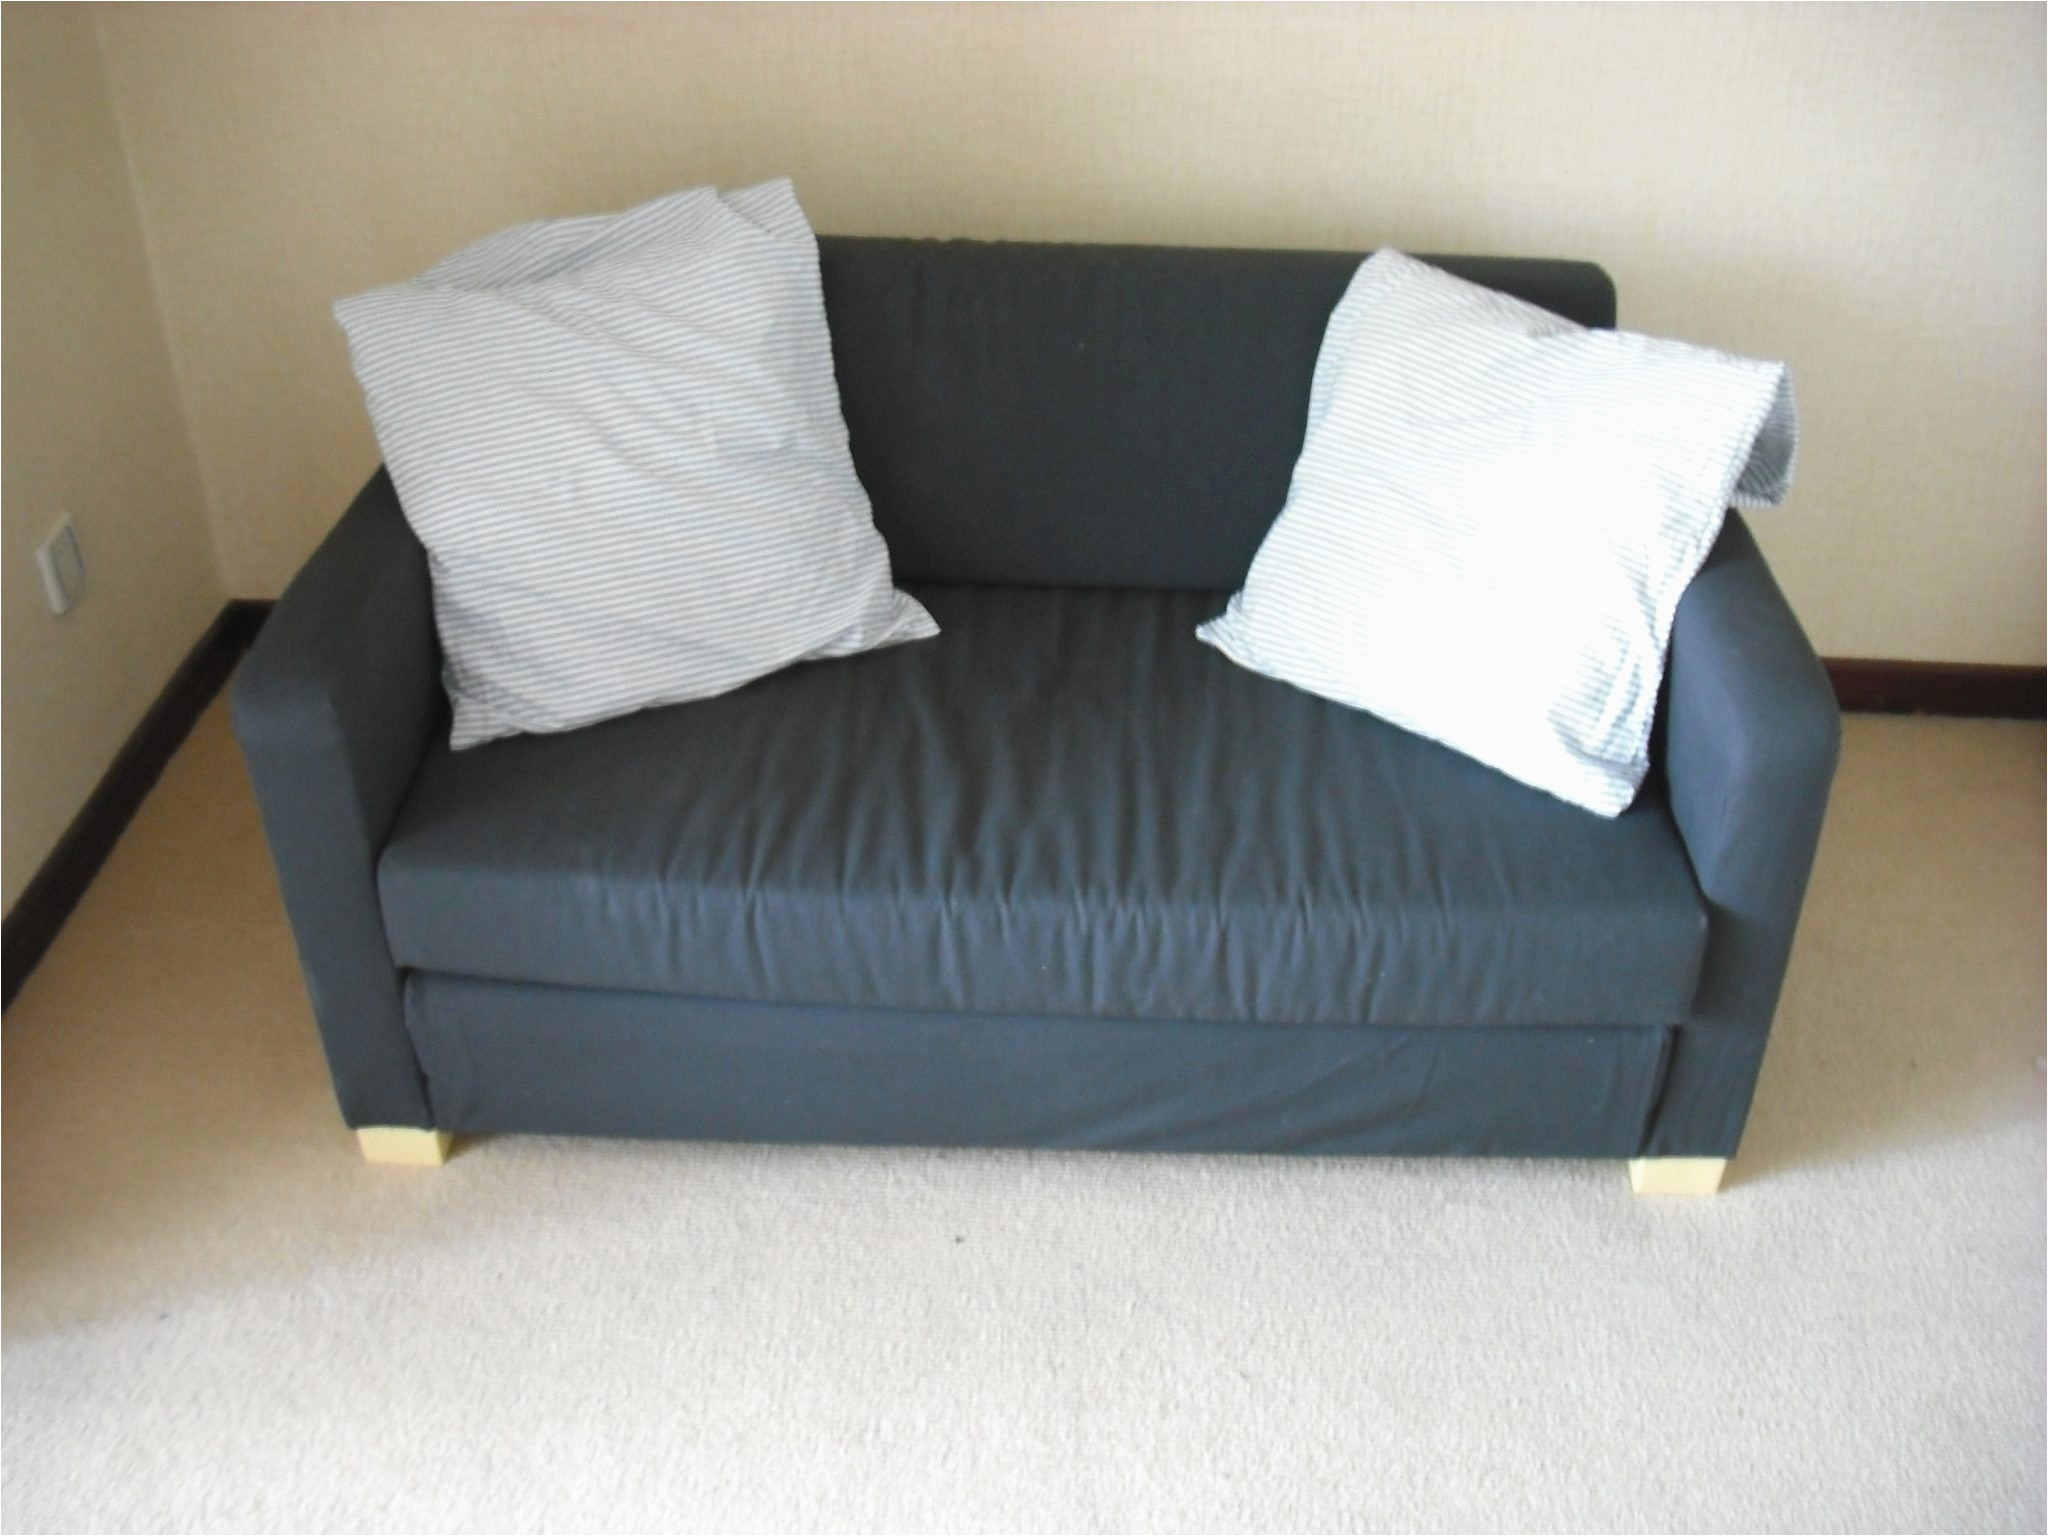 ikea schlafsofa solsta einzigartig 26 lovely solsta sleeper sofa review house ideas bilder of ikea schlafsofa